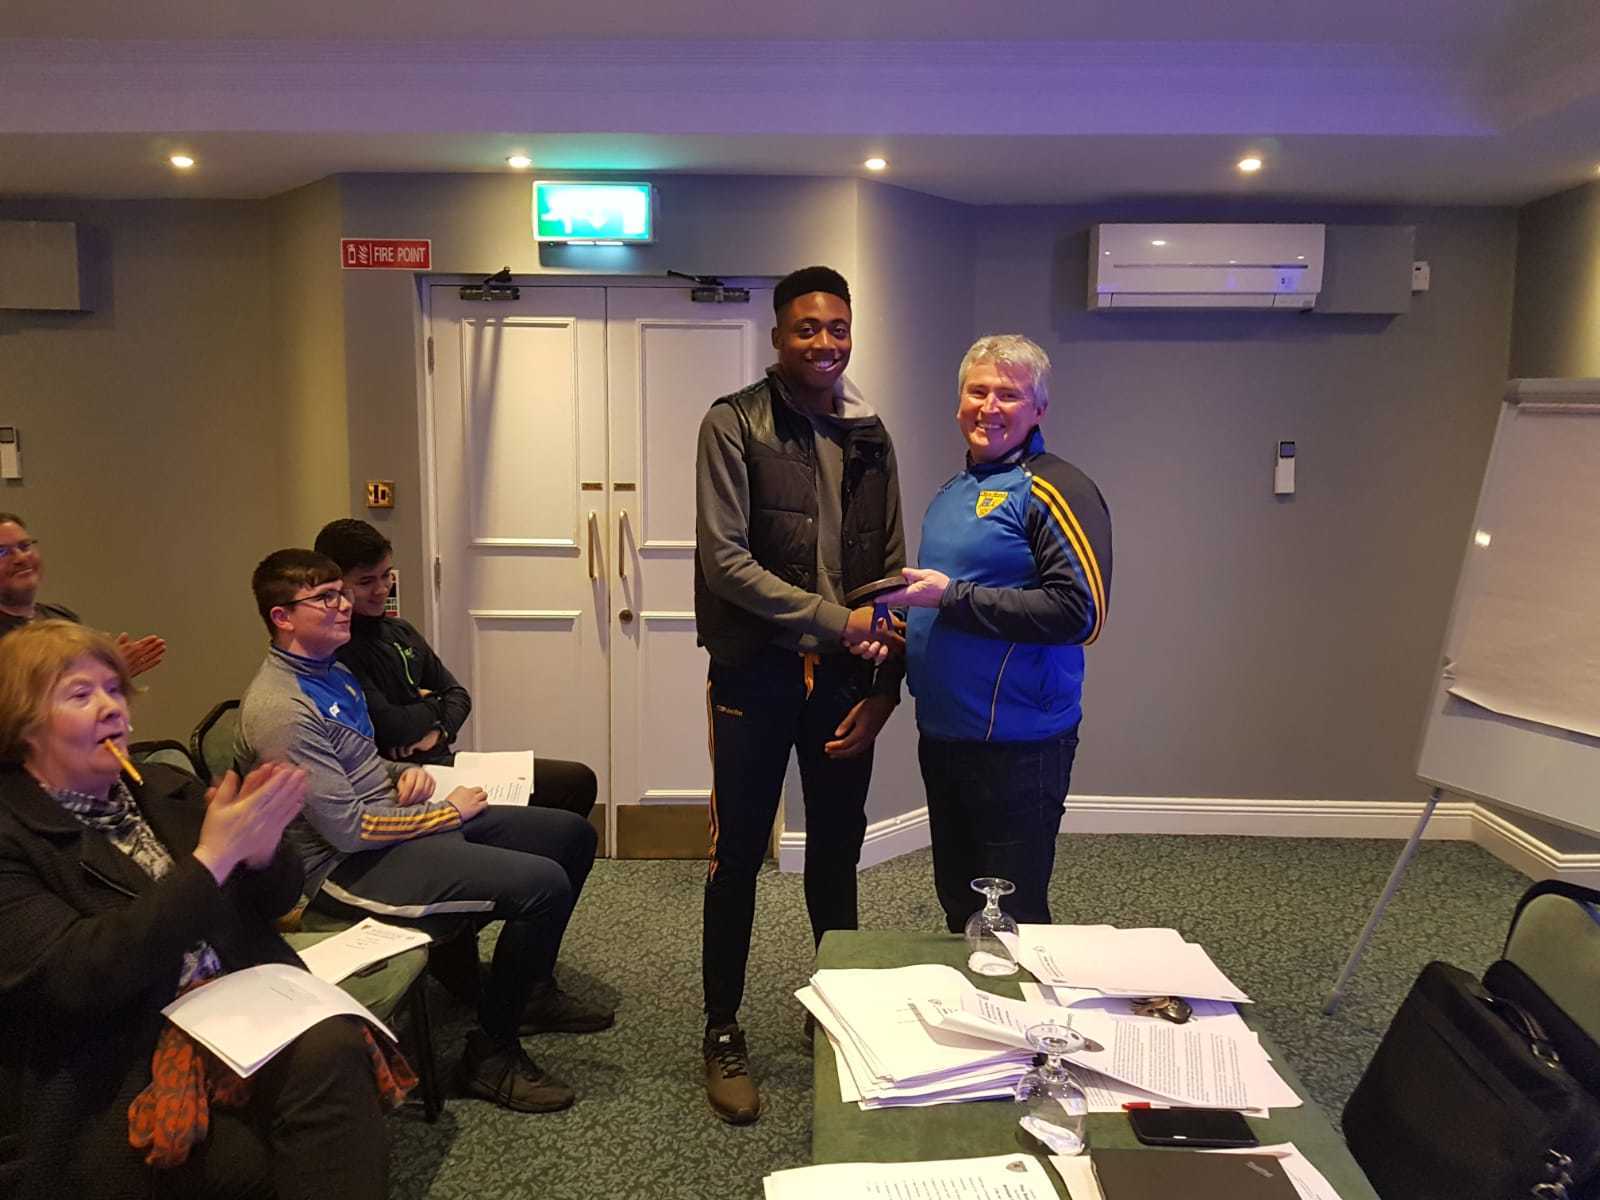 Chibby 20receiving 20award 20from 20conall 20mcnulty 20at 20agm